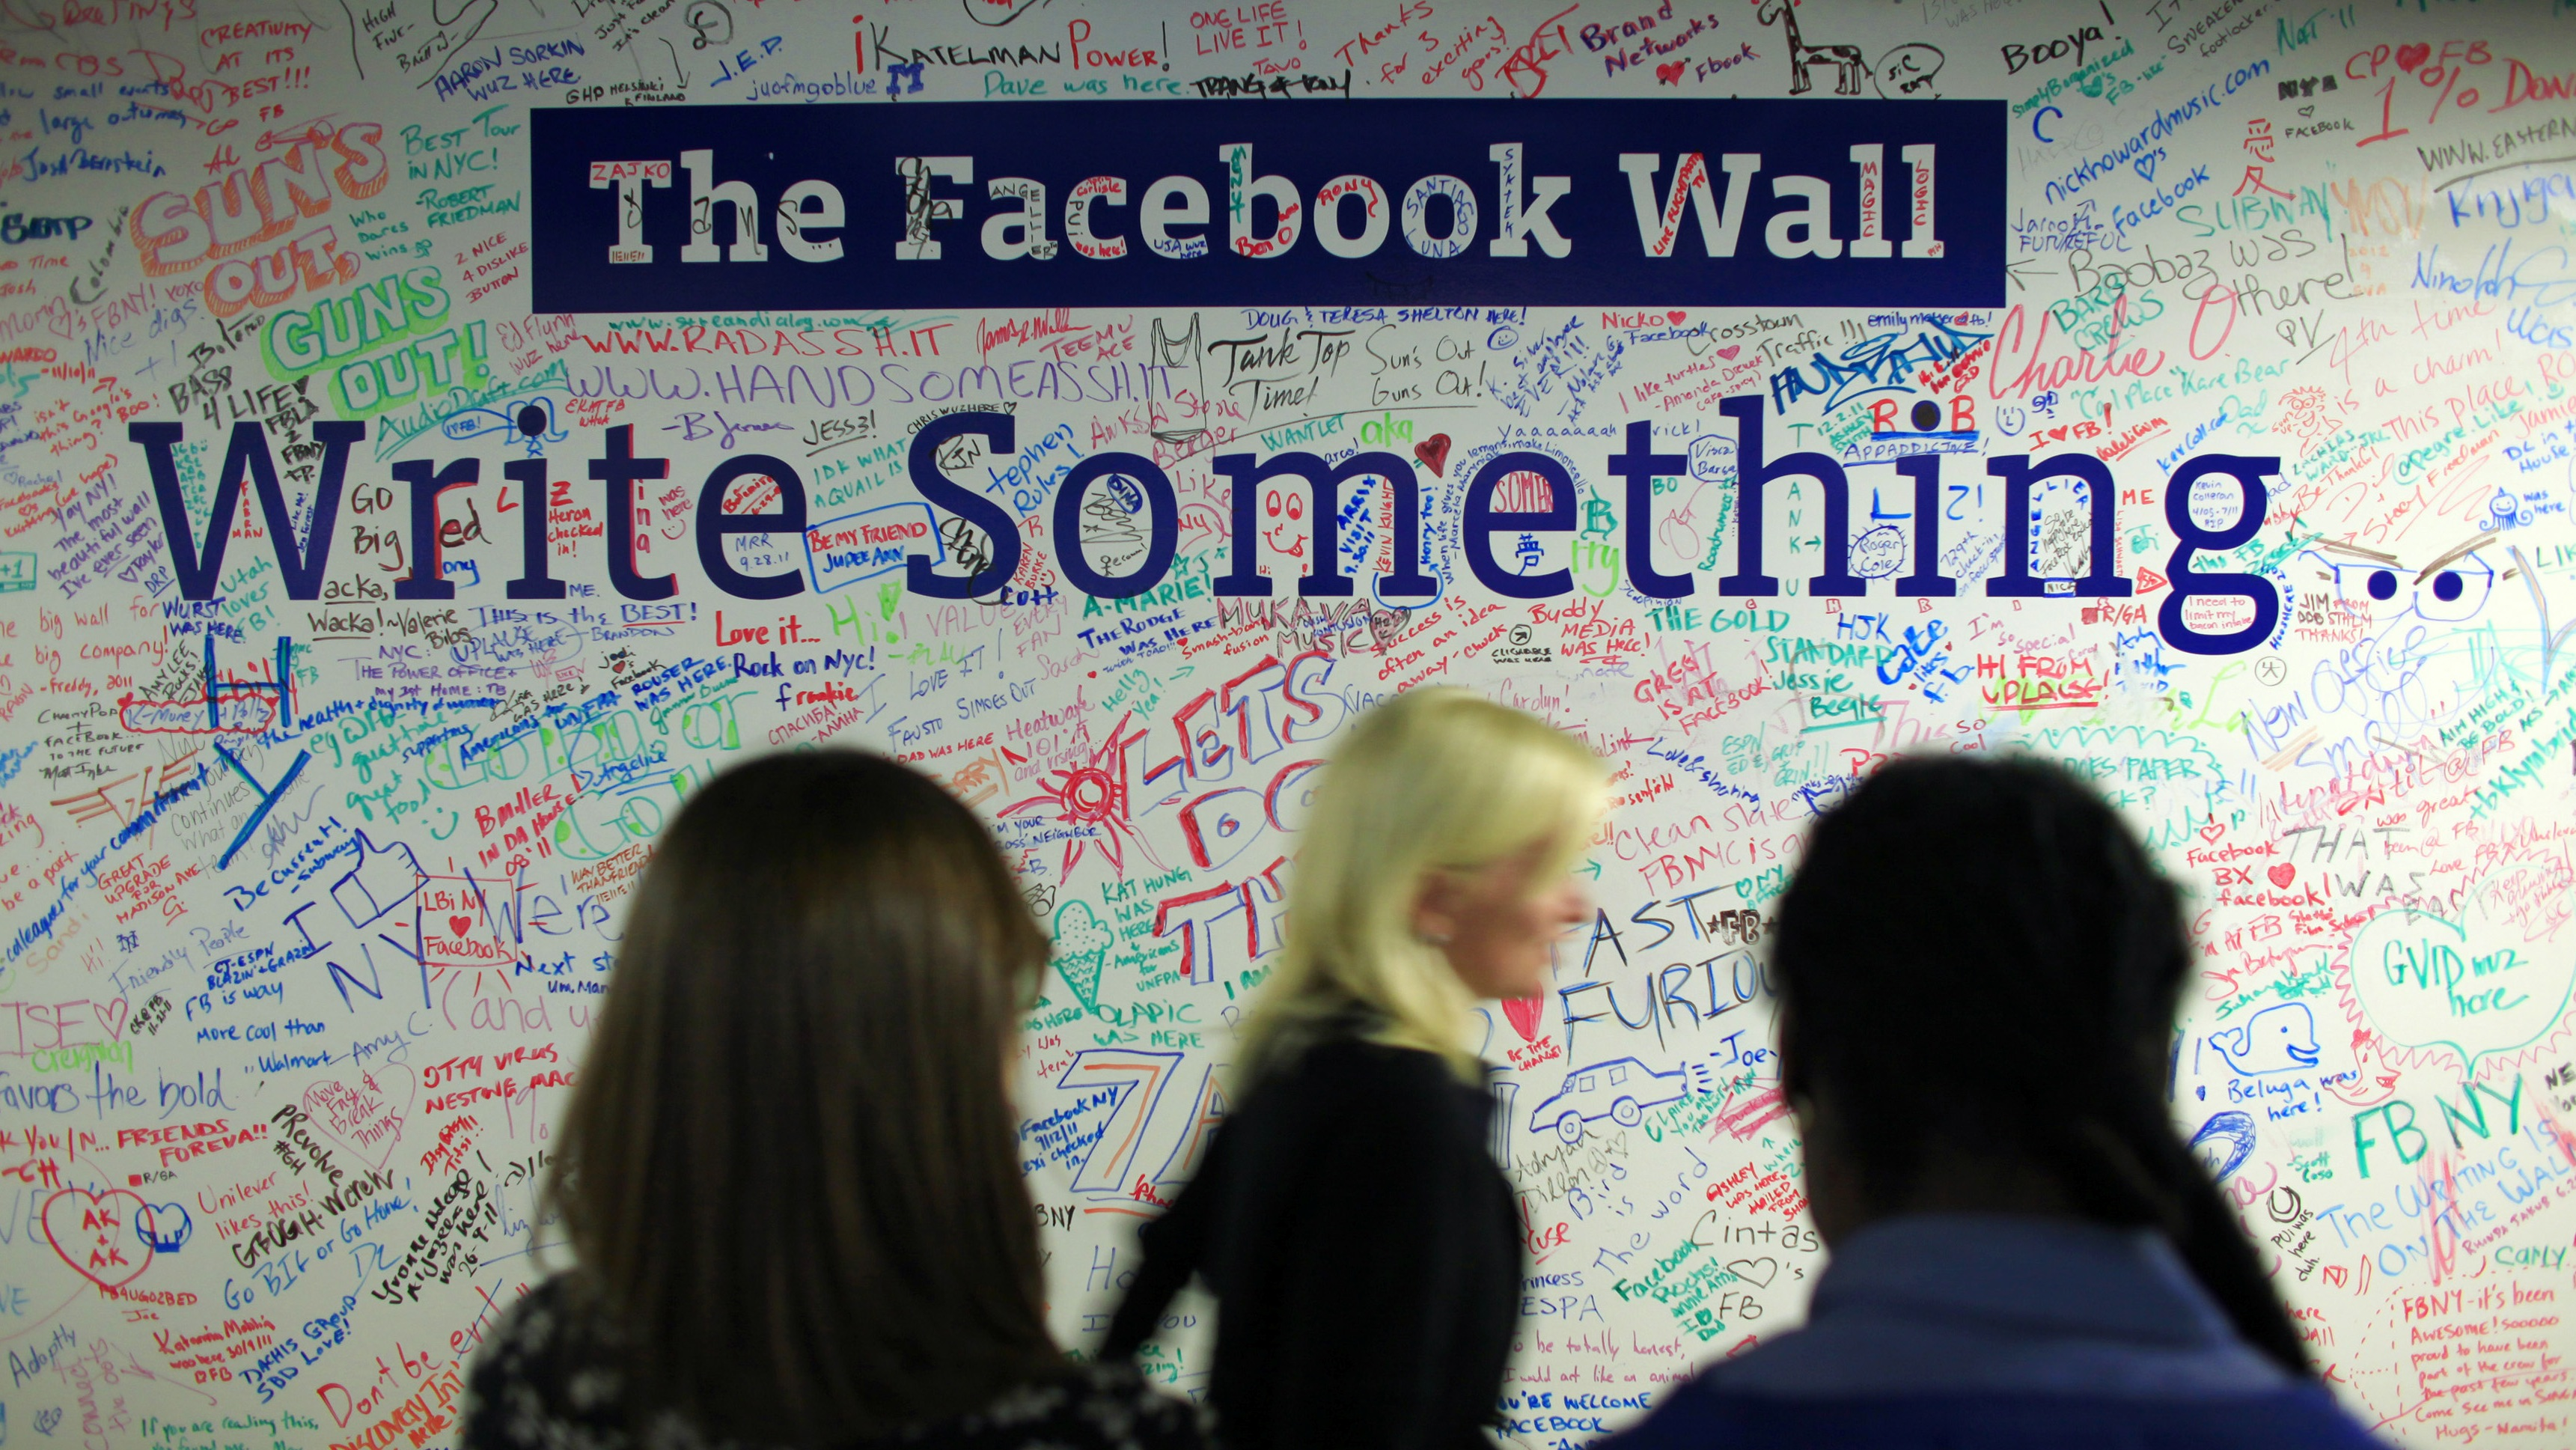 People walk past the Facebook wall inside their office in New York December 2, 2011. REUTERS/Eduardo Munoz (UNITED STATES - Tags: BUSINESS TPX IMAGES OF THE DAY)